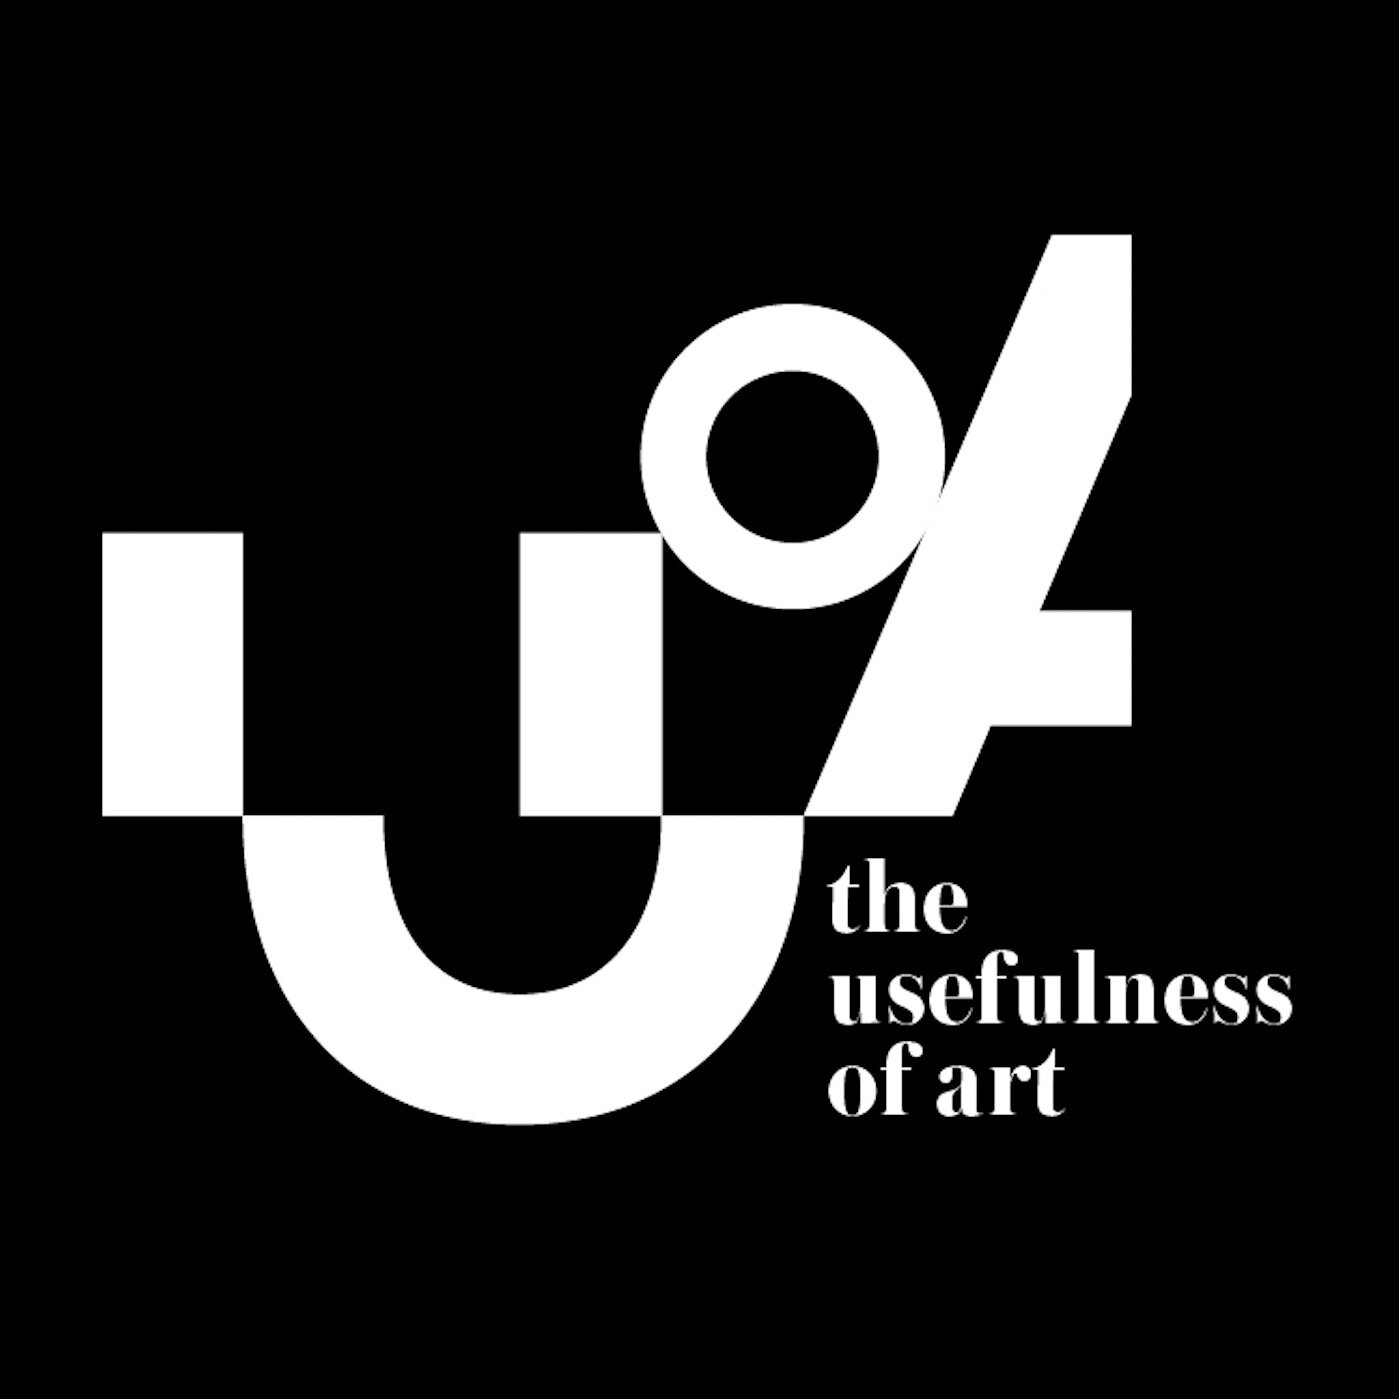 the usefulness of art